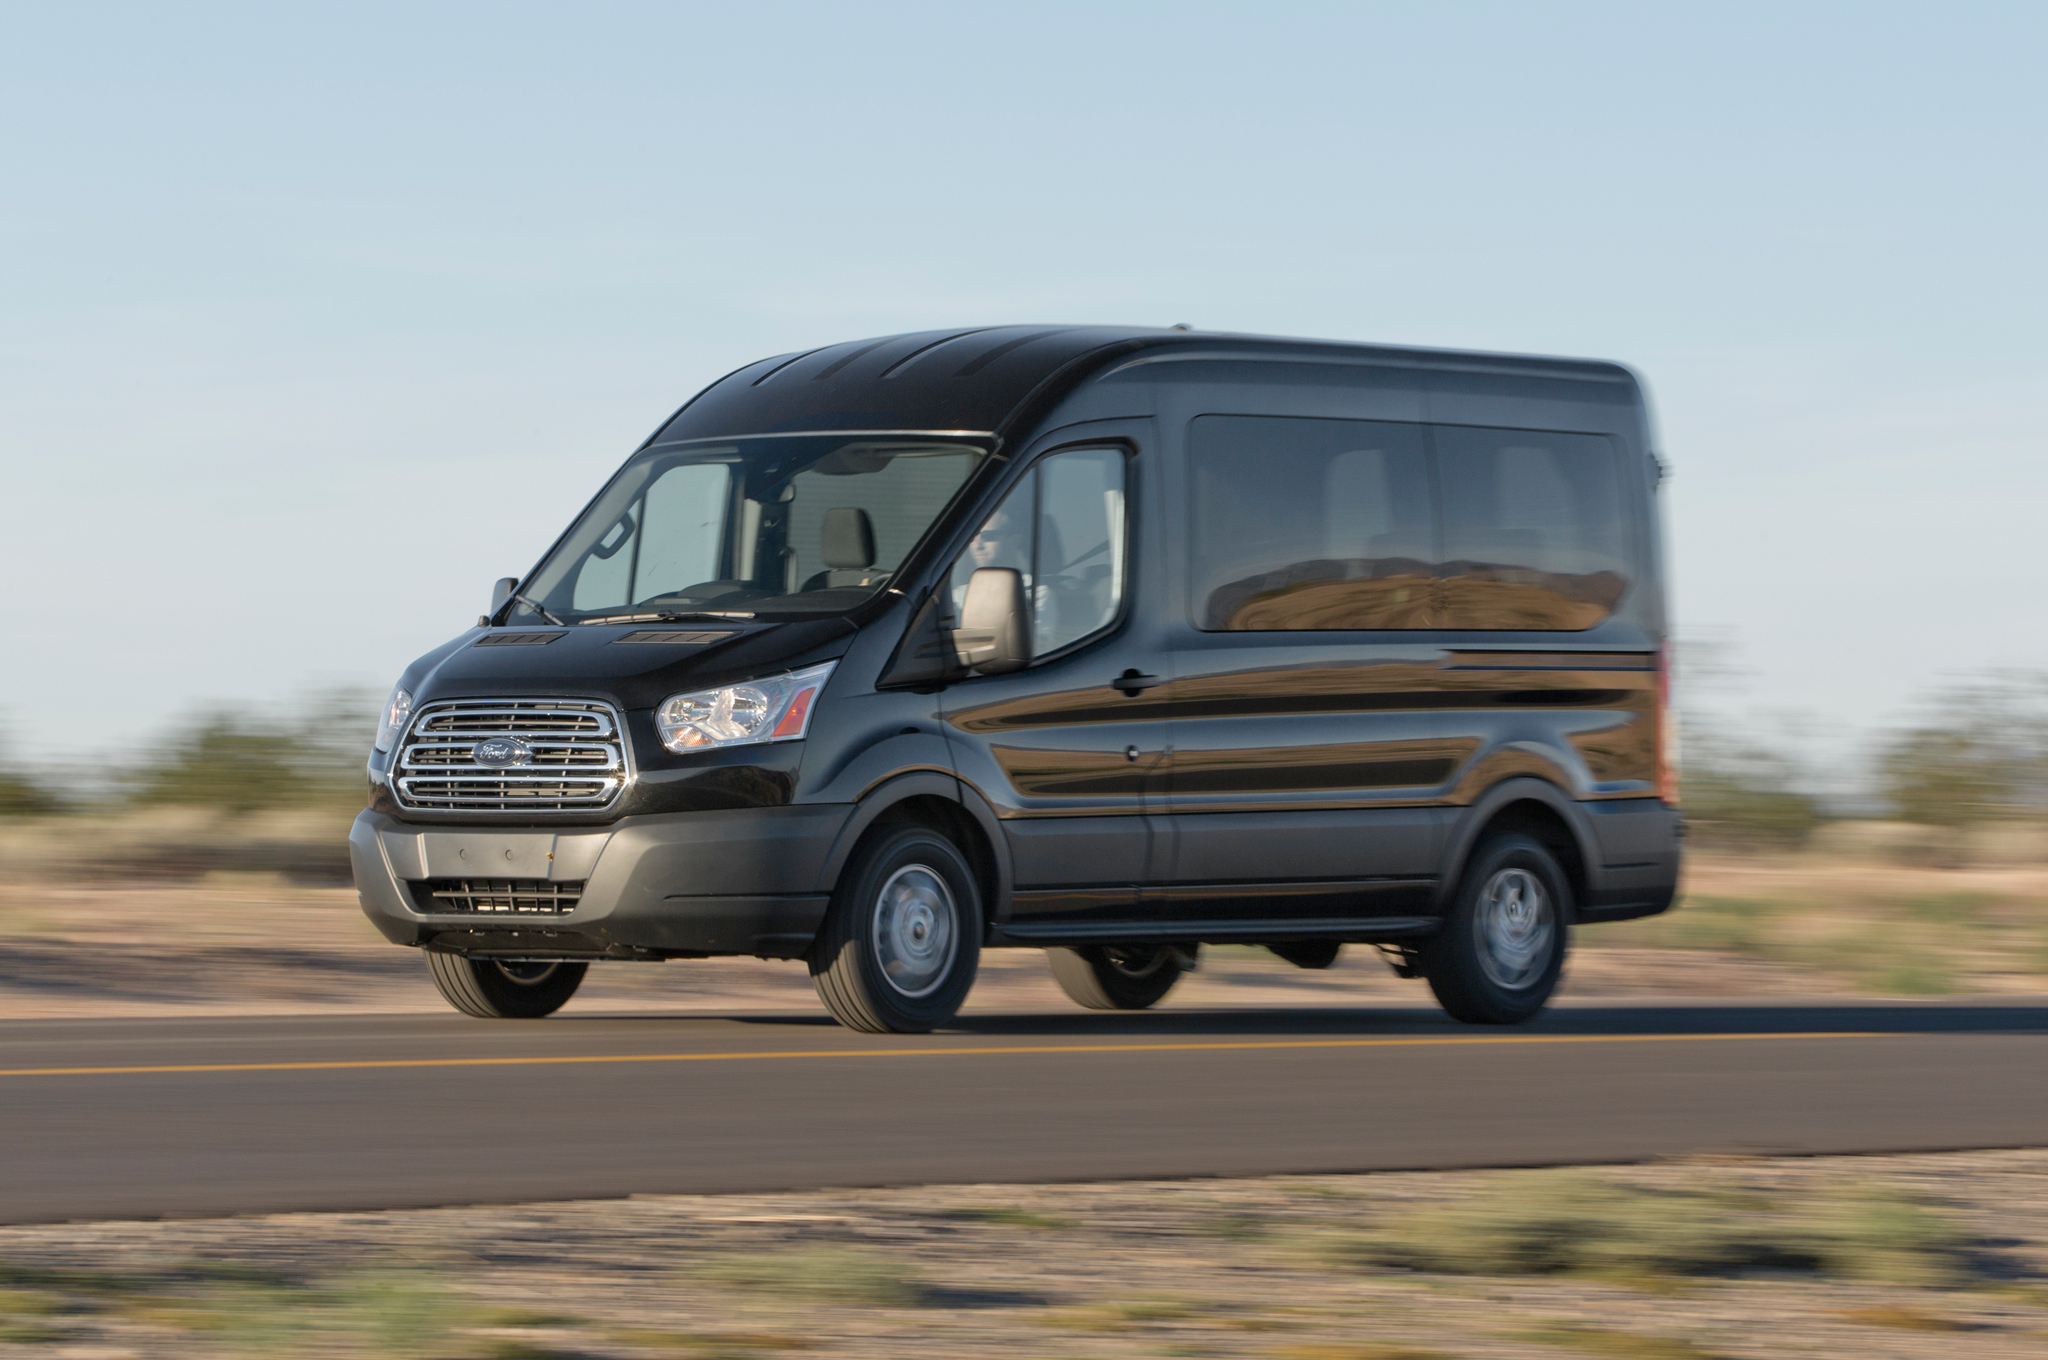 2015 Ford Transit 150 Exterior Overview (Photo 6 of 13)